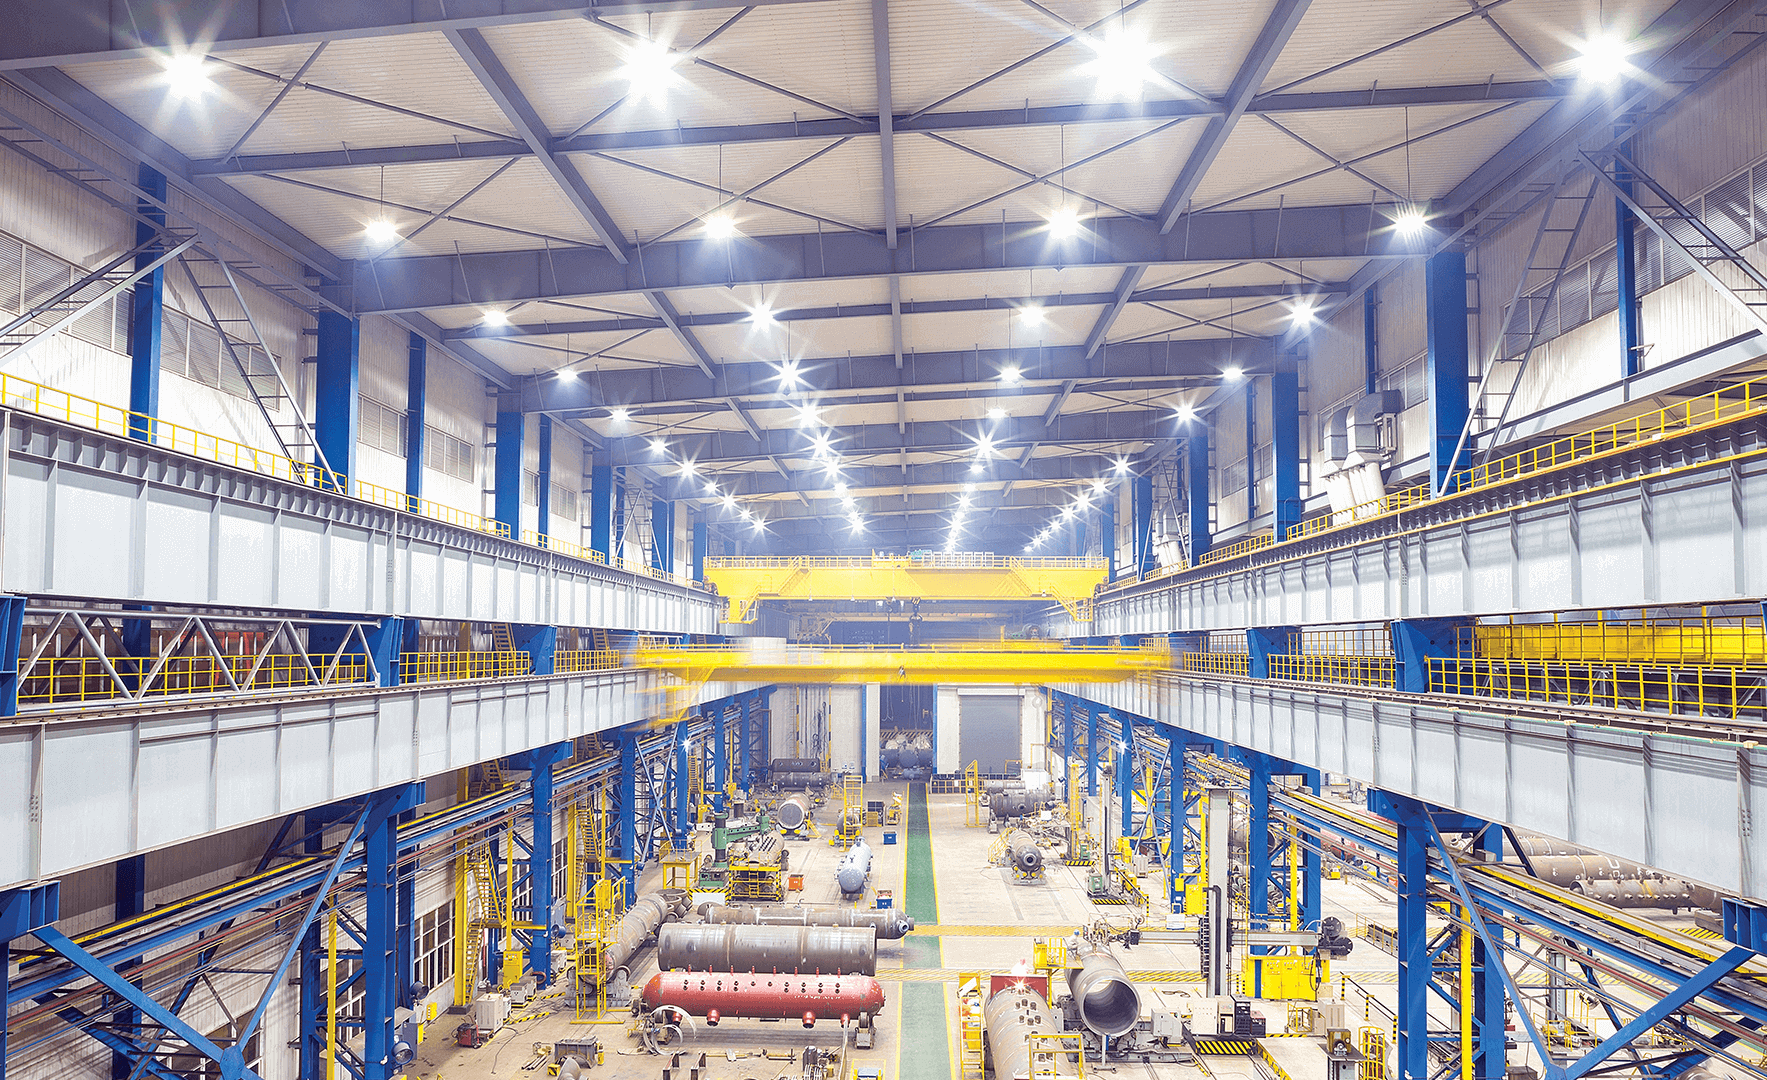 Key Advantage of LED UFO Light for Warehouse after Installation